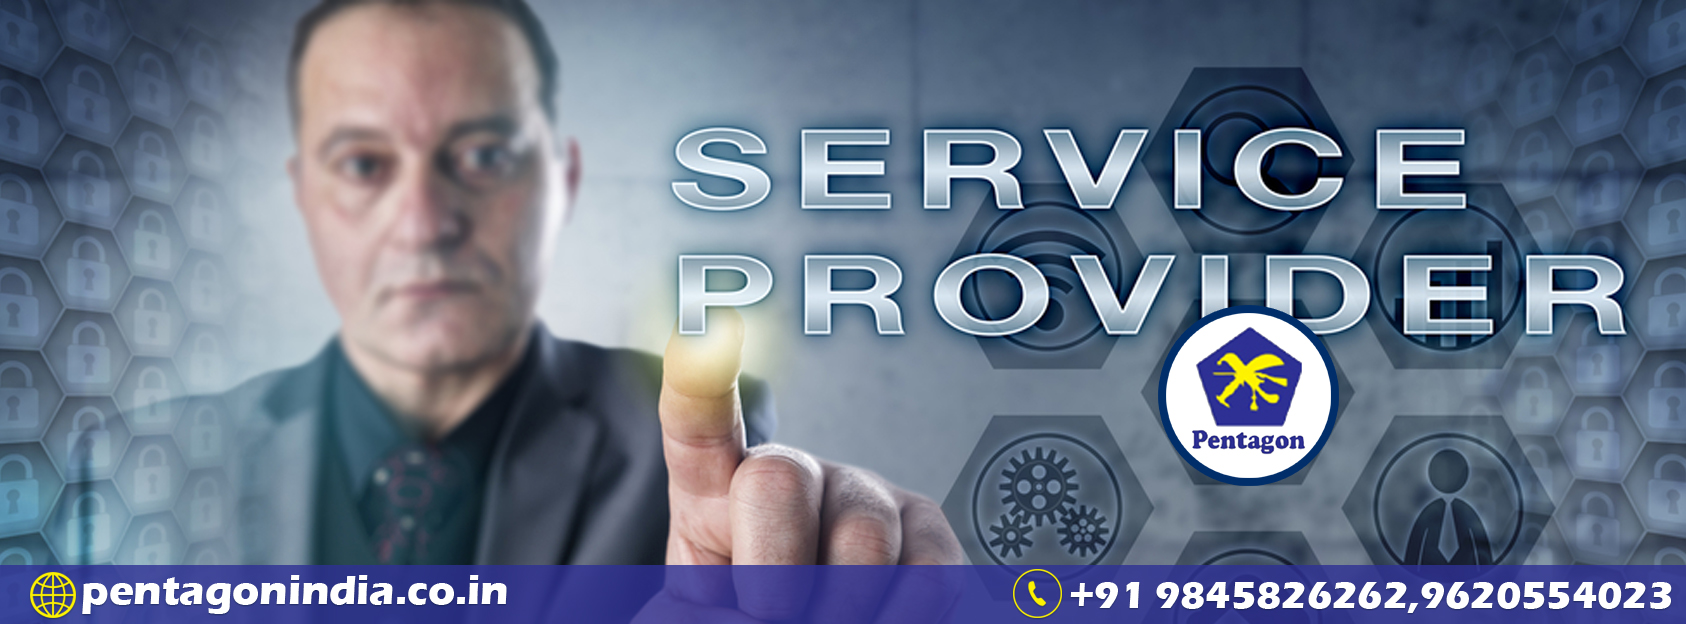 Best Security Service in Bangalore